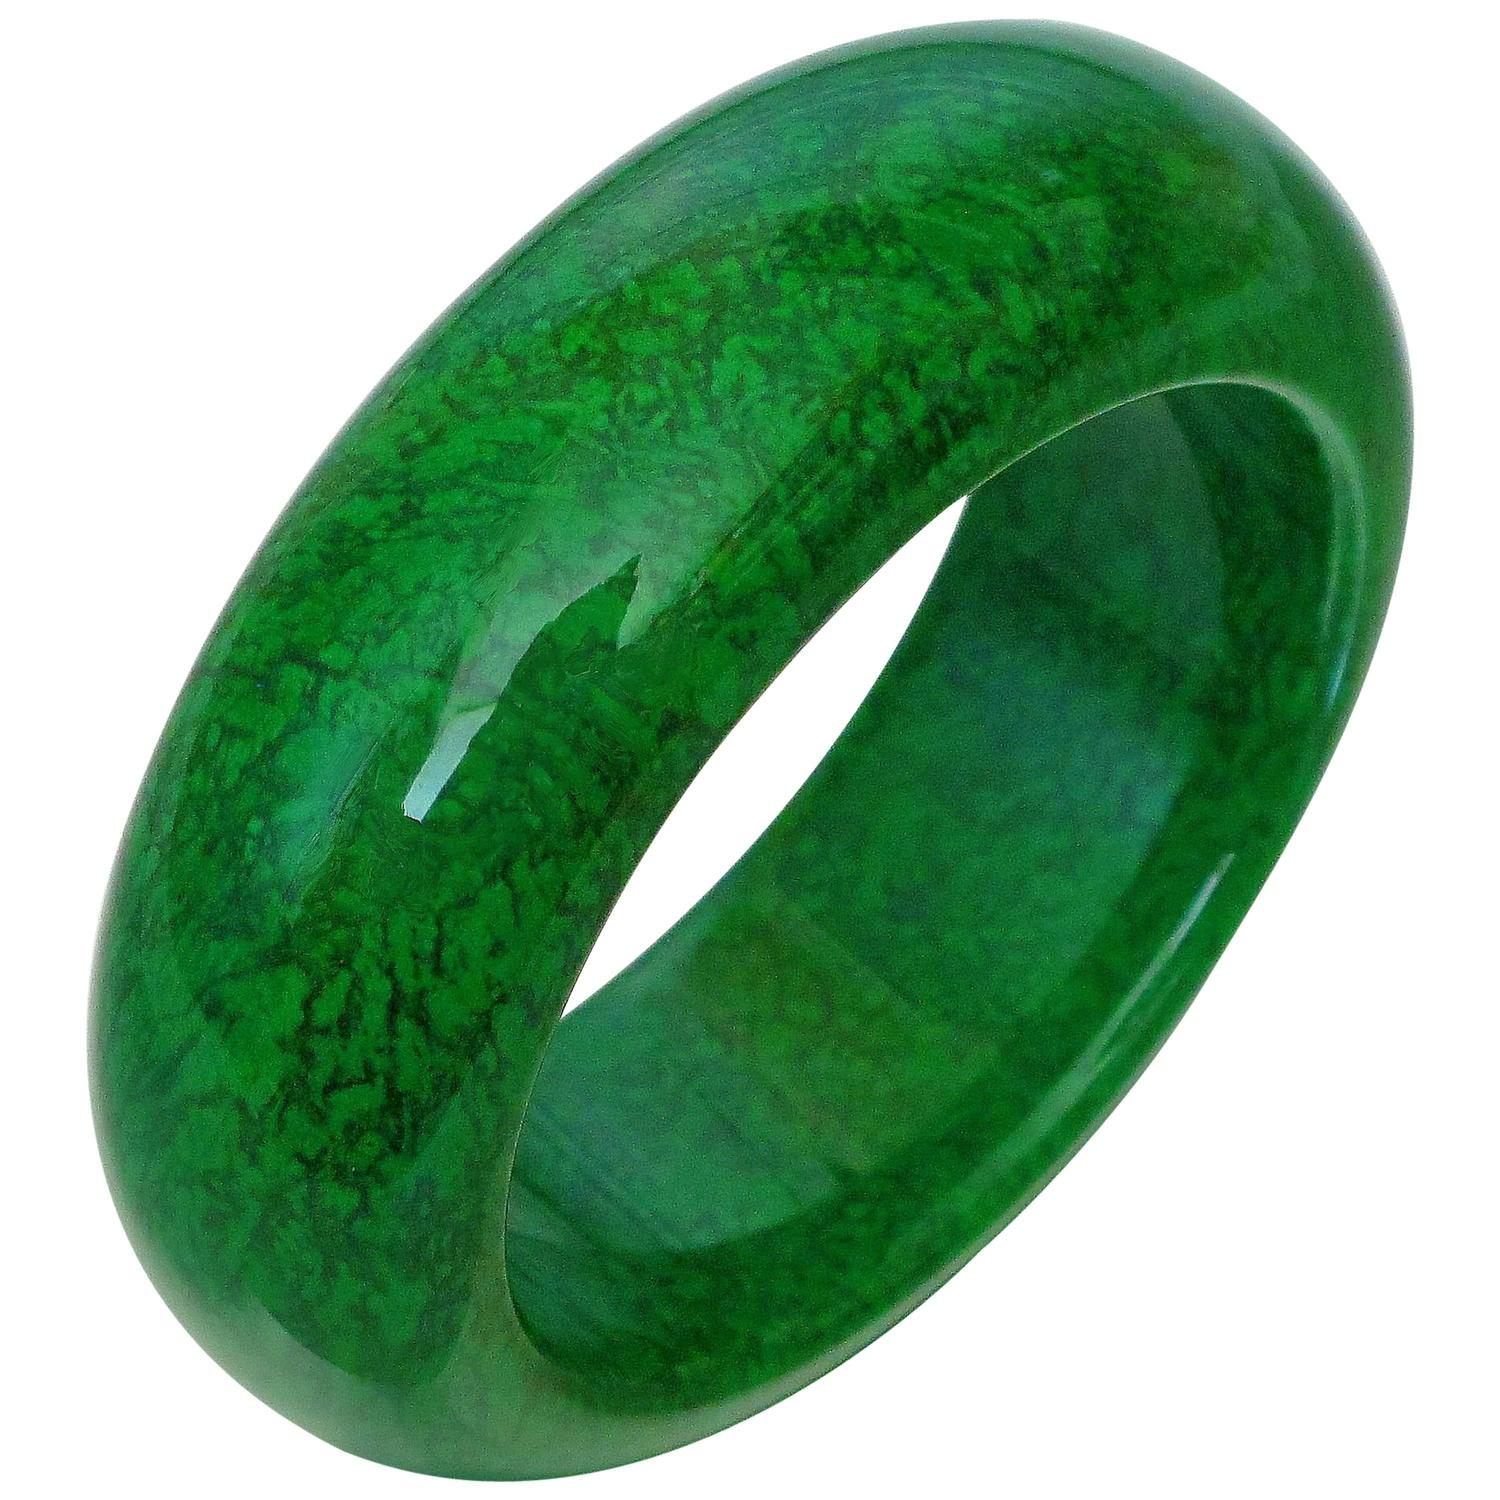 Natural maw sit sit jade bangle bracelet for sale at 1stdibs for Pictures of jade jewelry